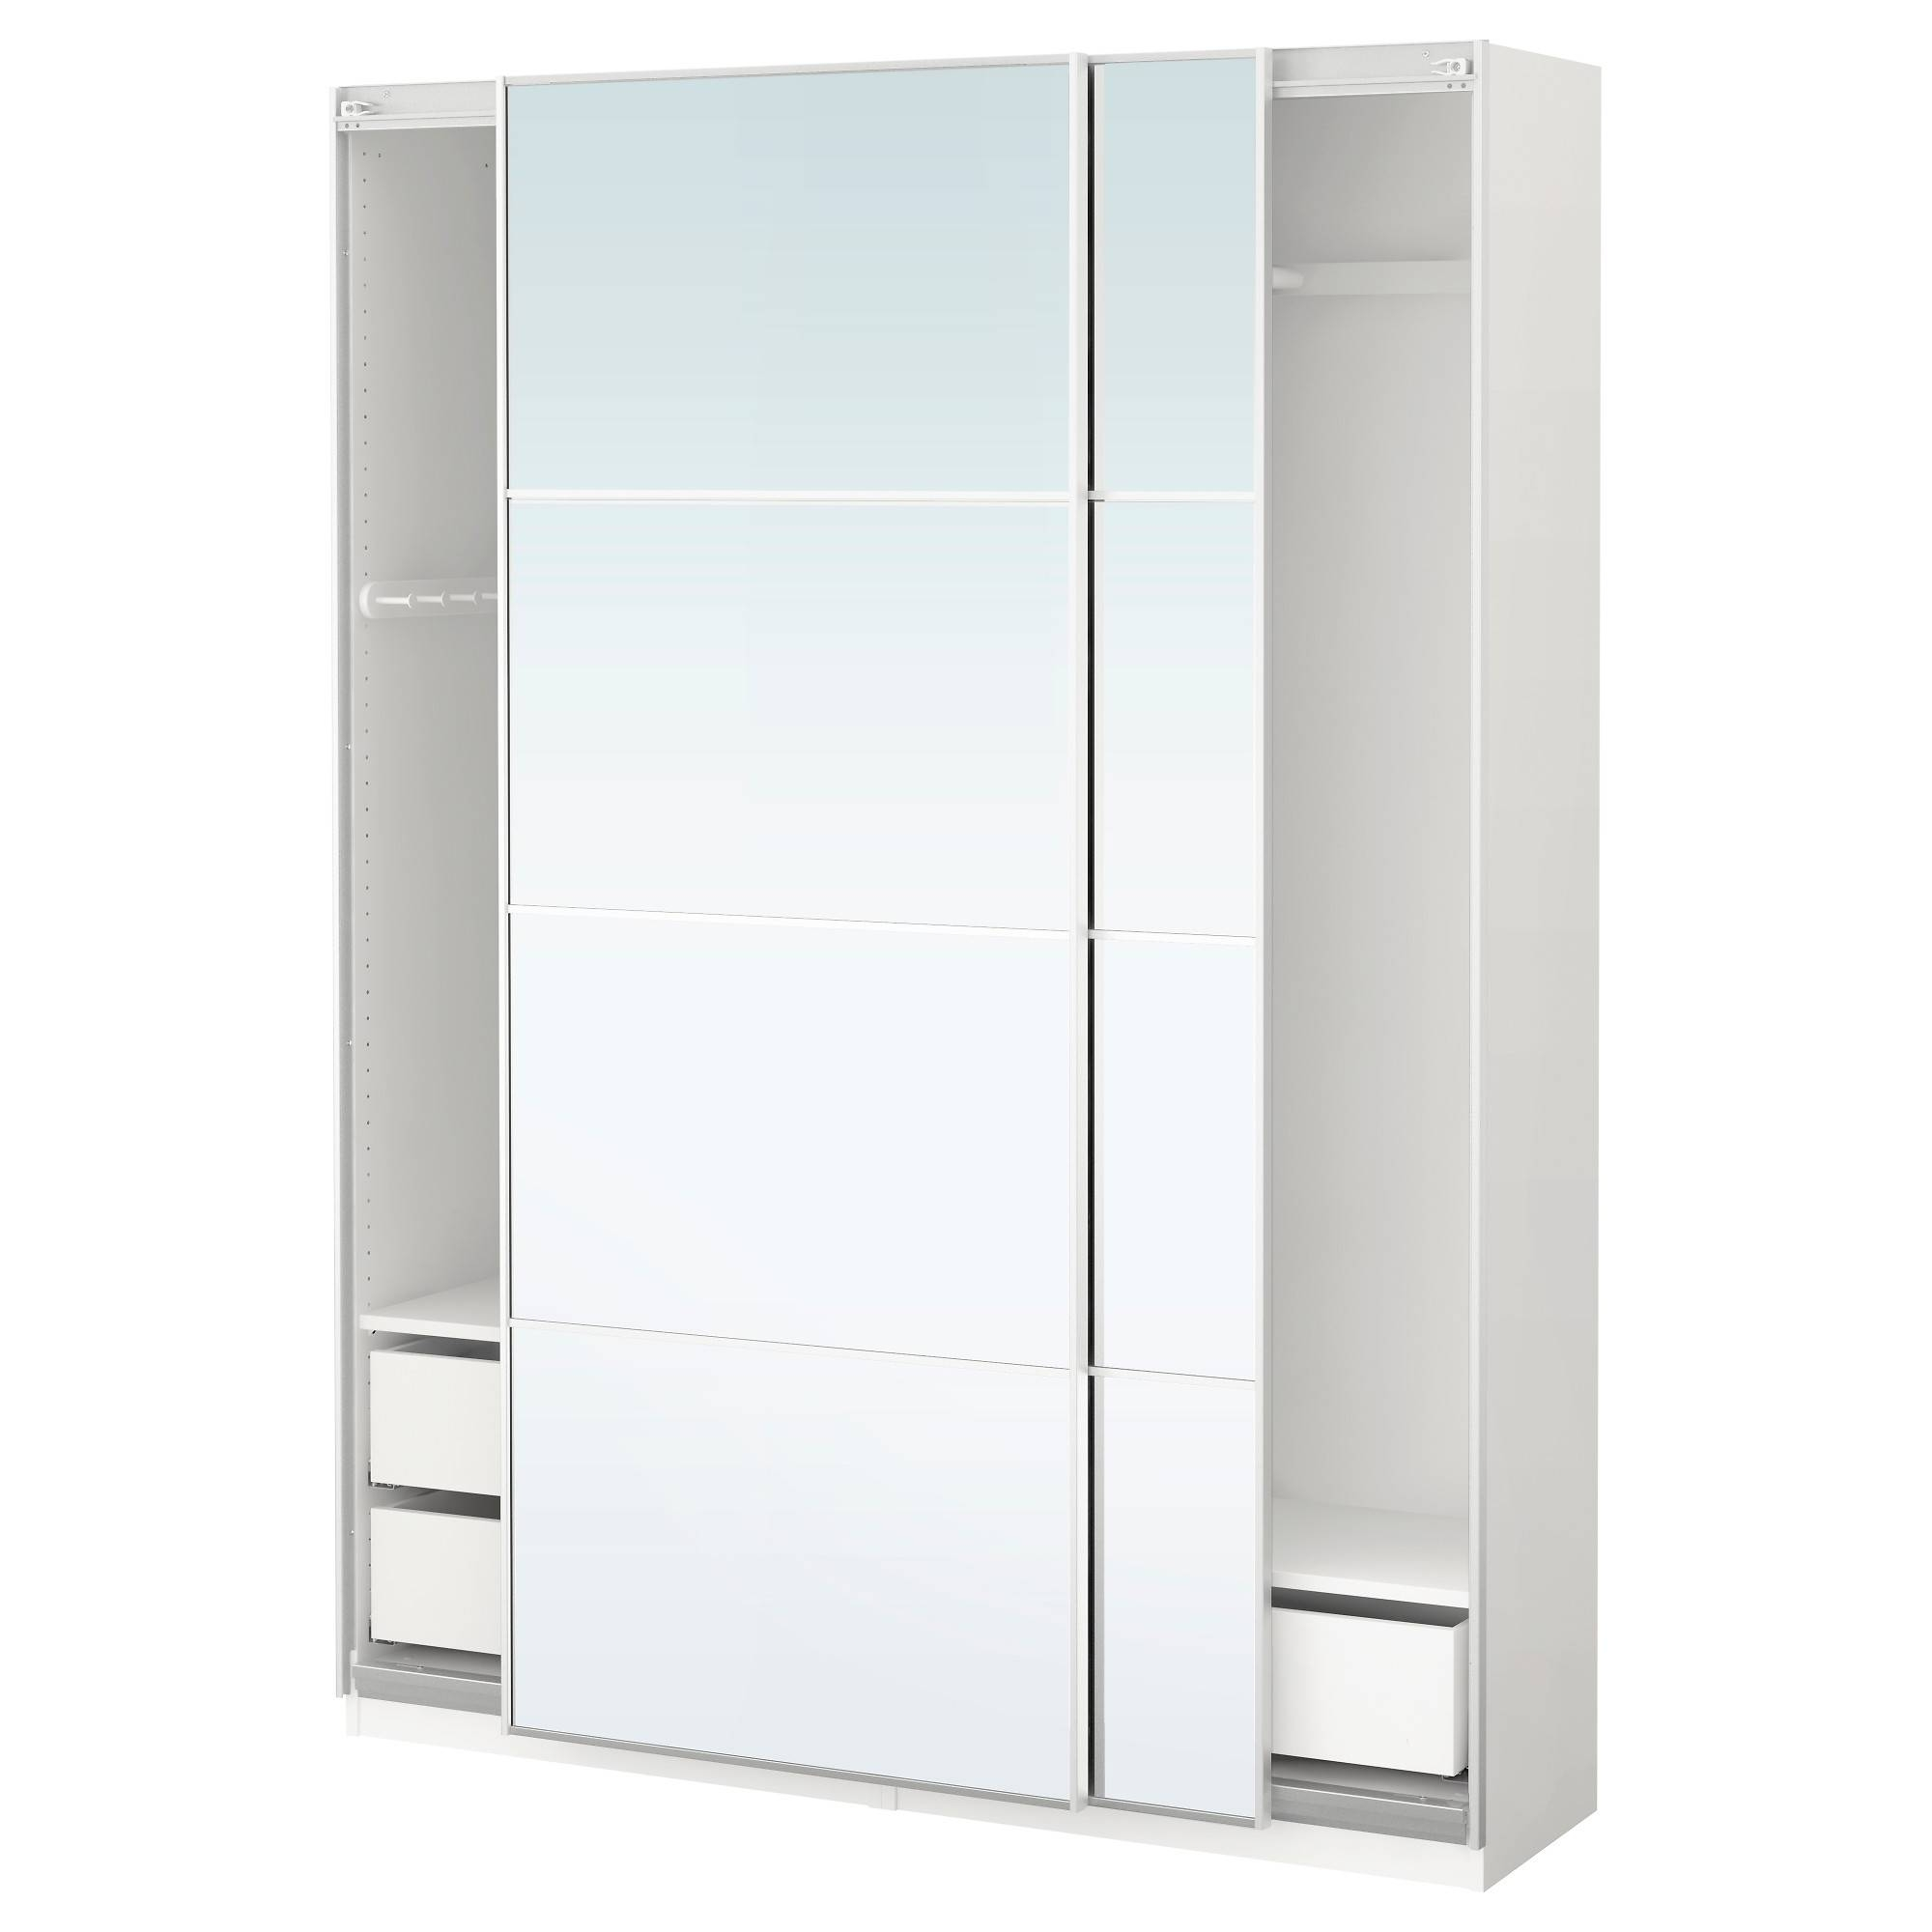 Wardrobes, Armoires & Closets – Ikea Intended For Cheap Wardrobes With Mirror (View 14 of 15)